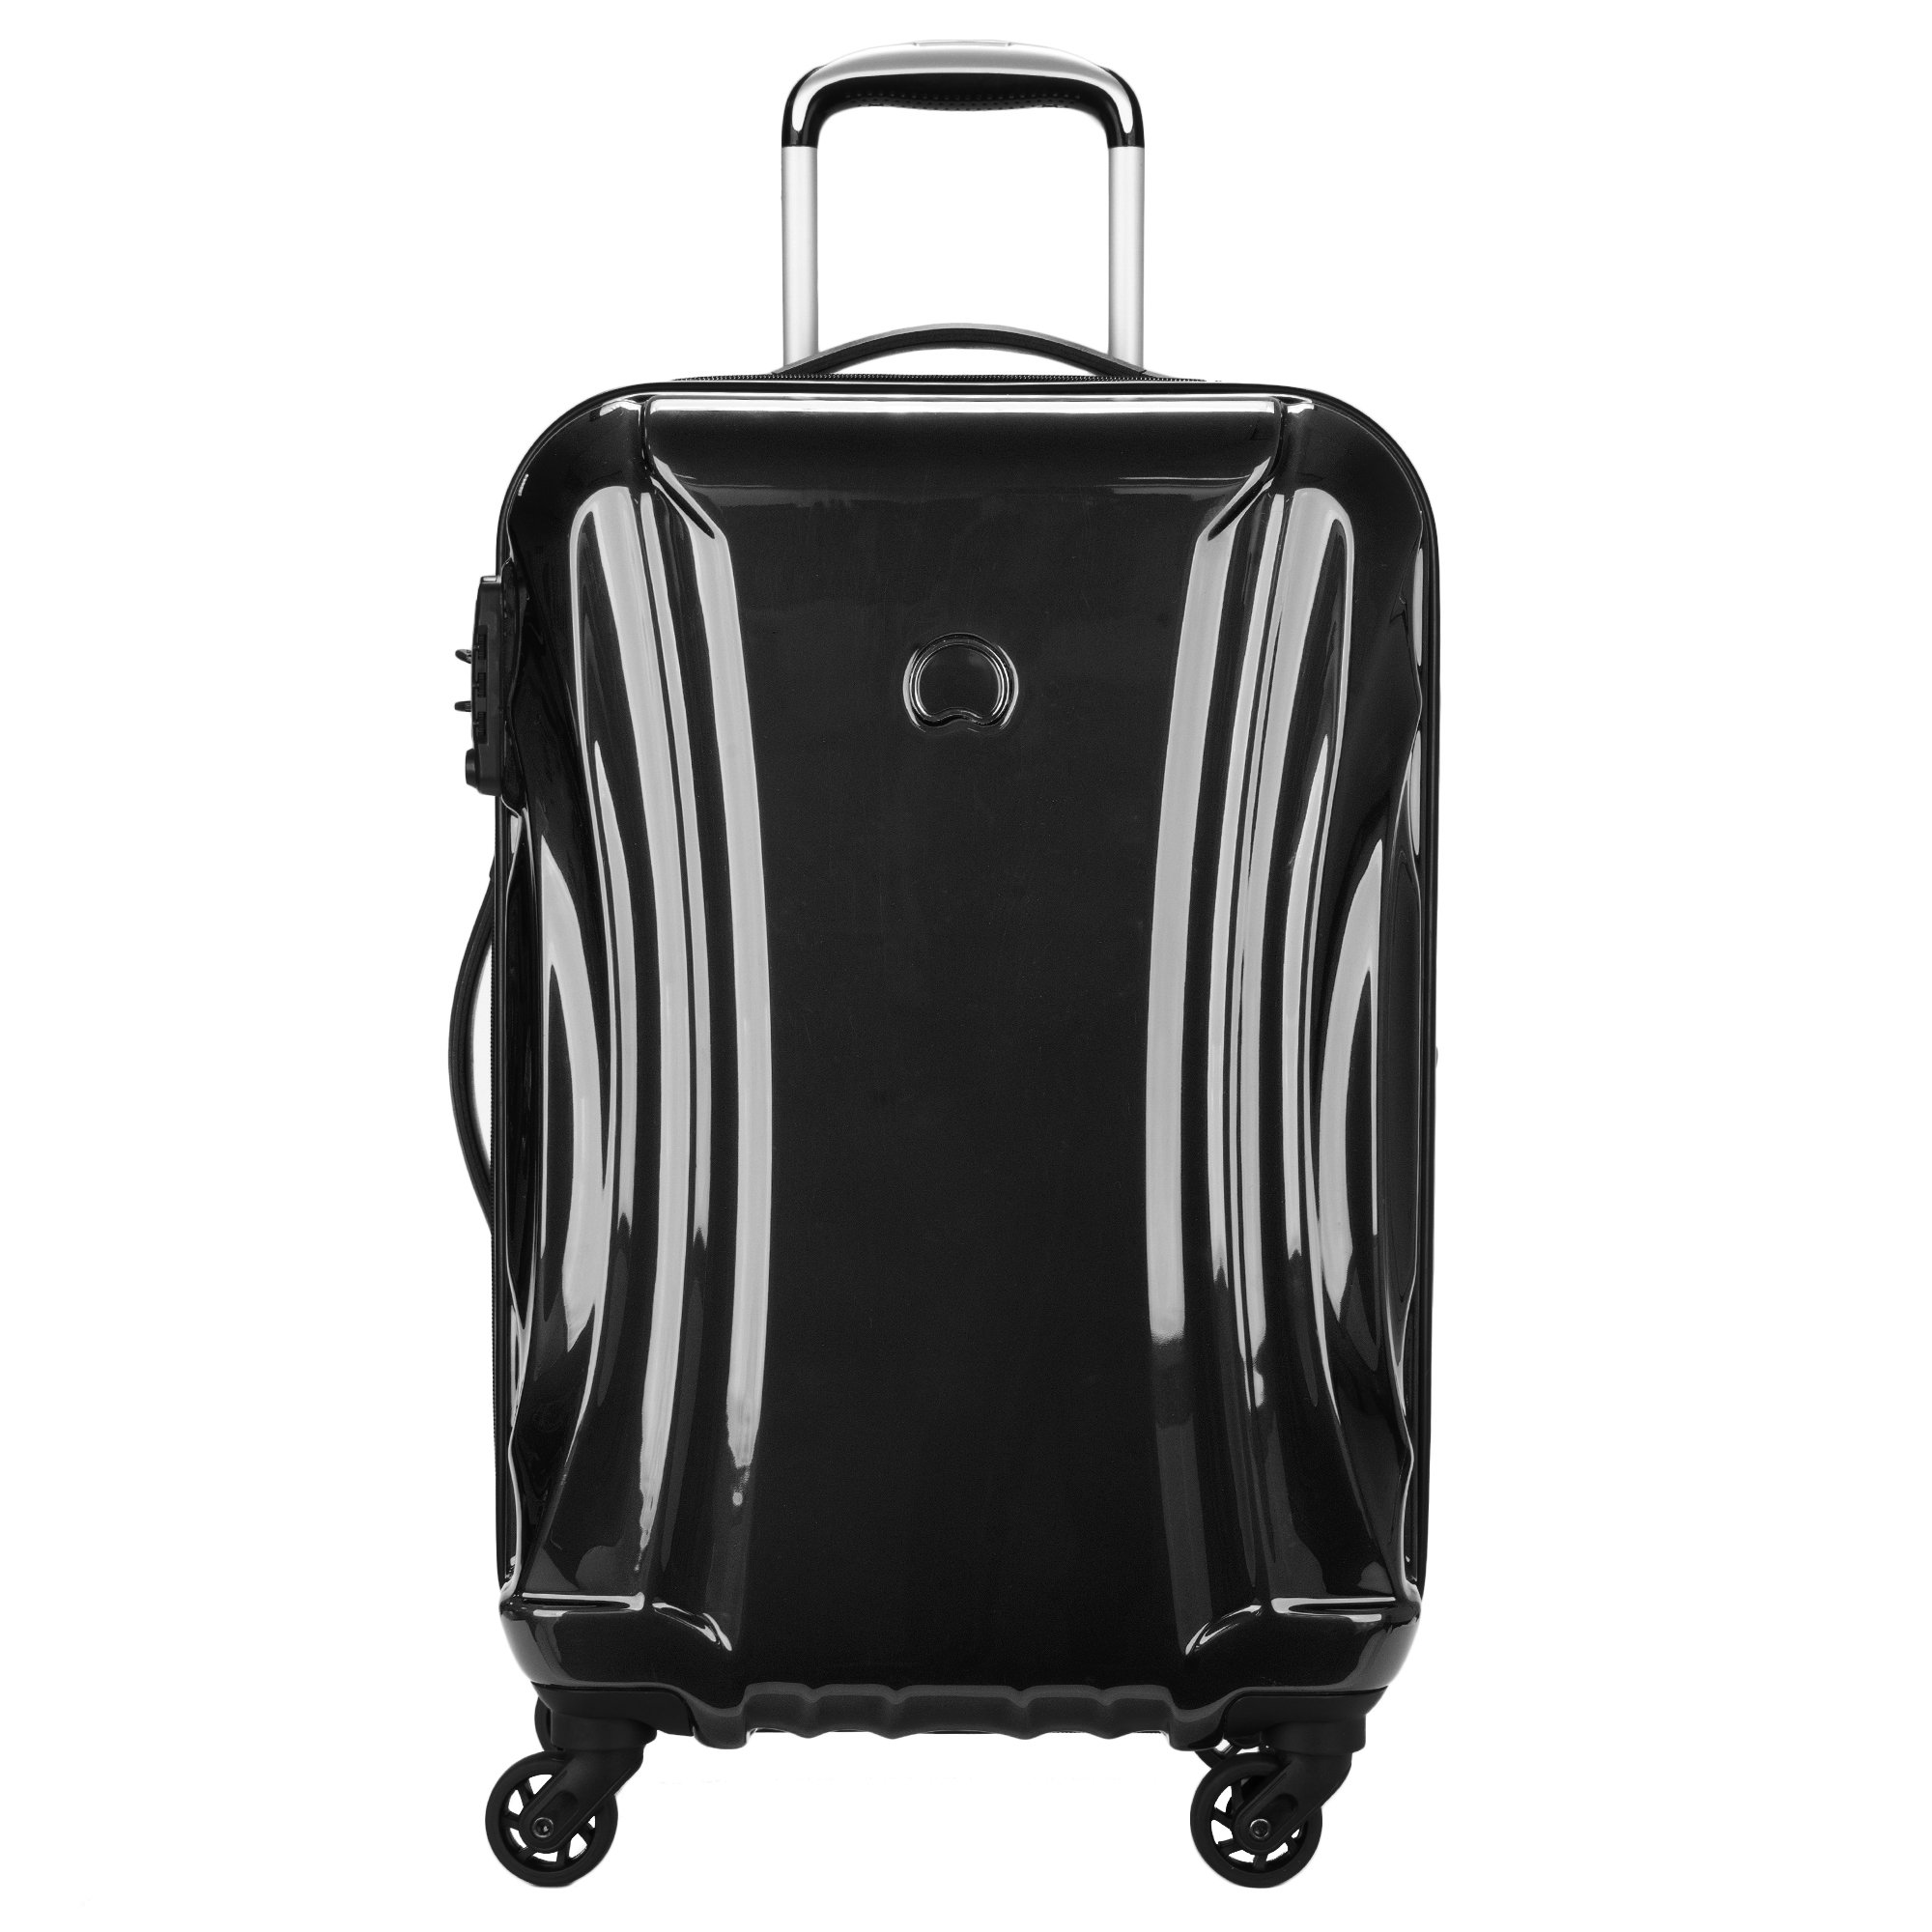 Delsey Luggage Passenger Lite Carry-on Expandable Suitcase, Black